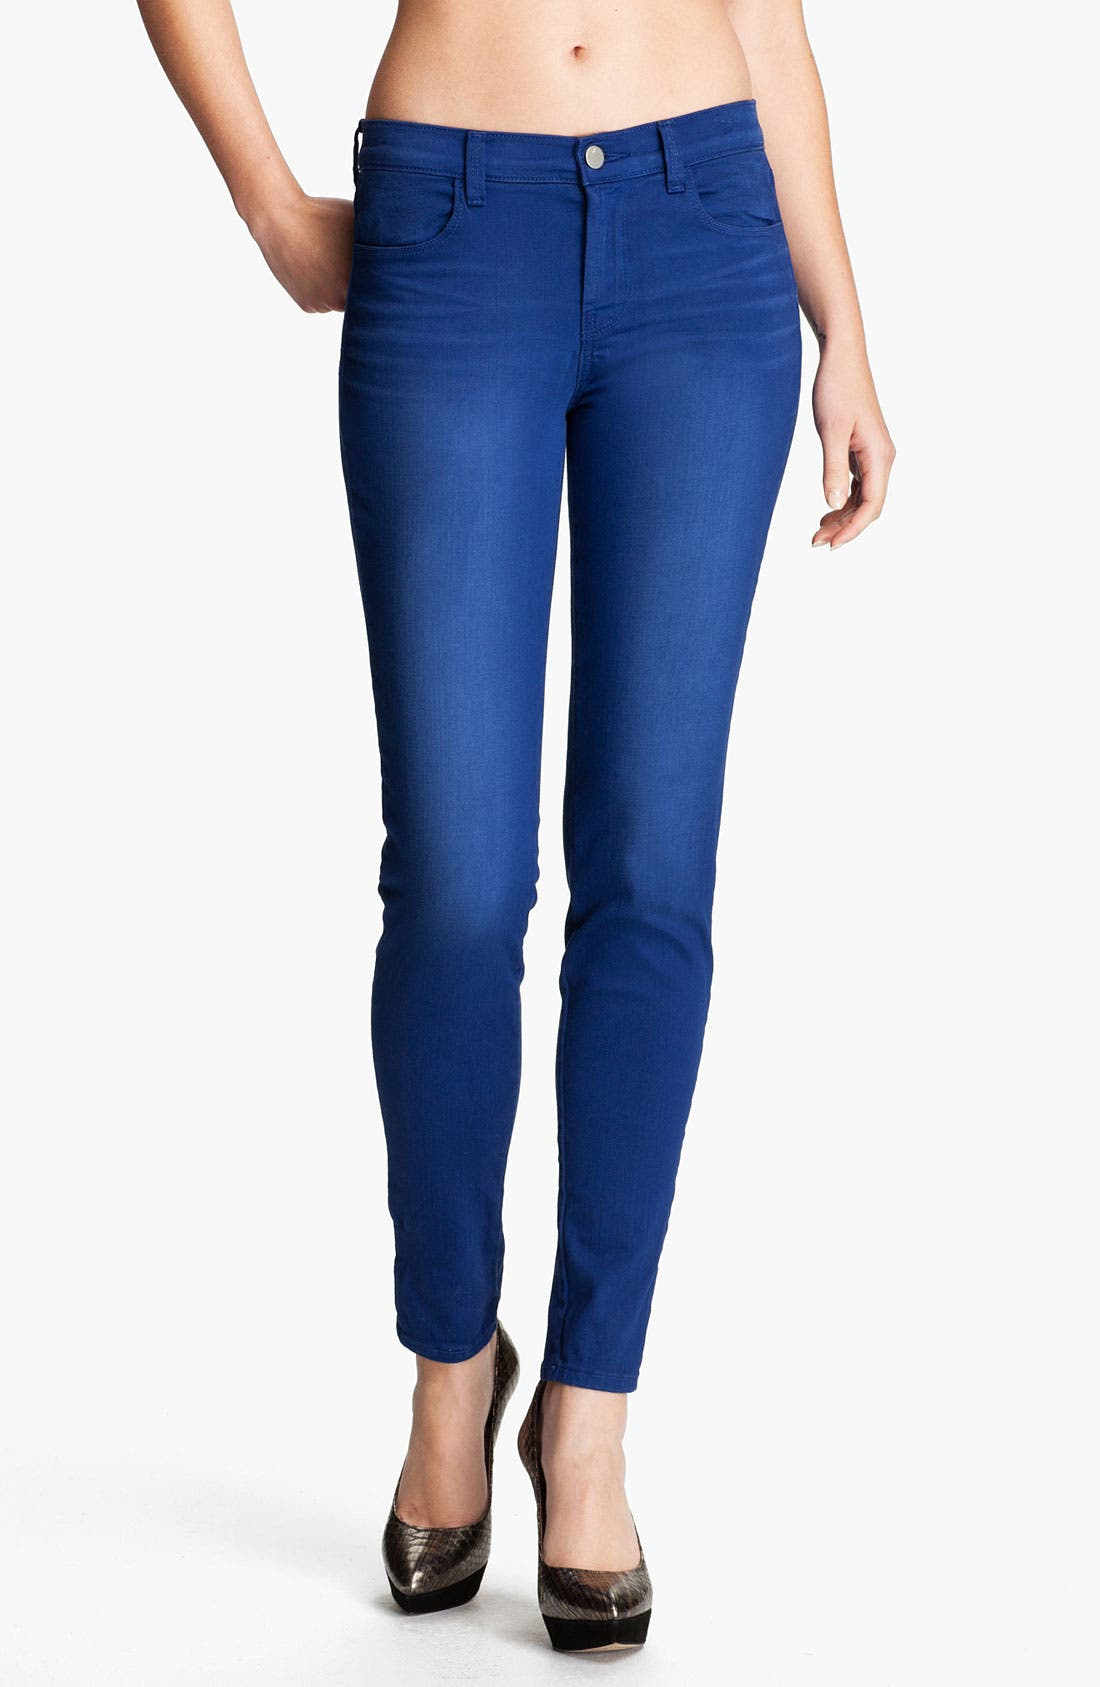 Alternate Image 1 Selected - J Brand Super Skinny Stretch Jeans